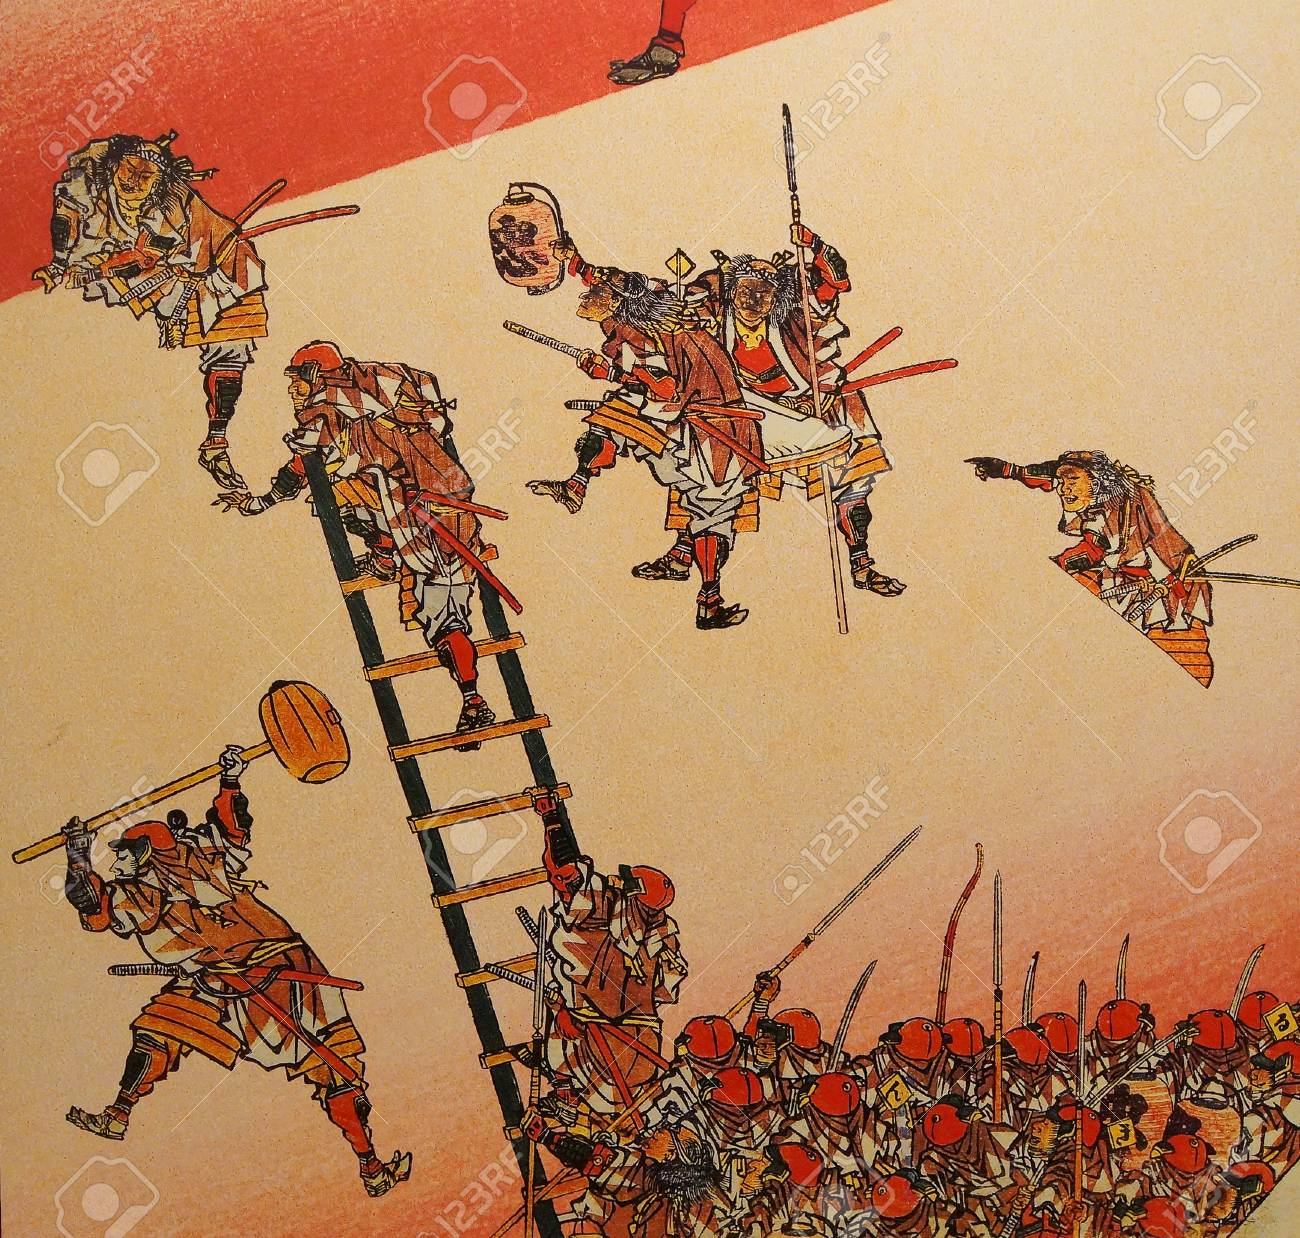 Narita Japan Mar 4 2015 Traditional Japanese Samurai Painting Stock Photo Picture And Royalty Free Image Image 88518561